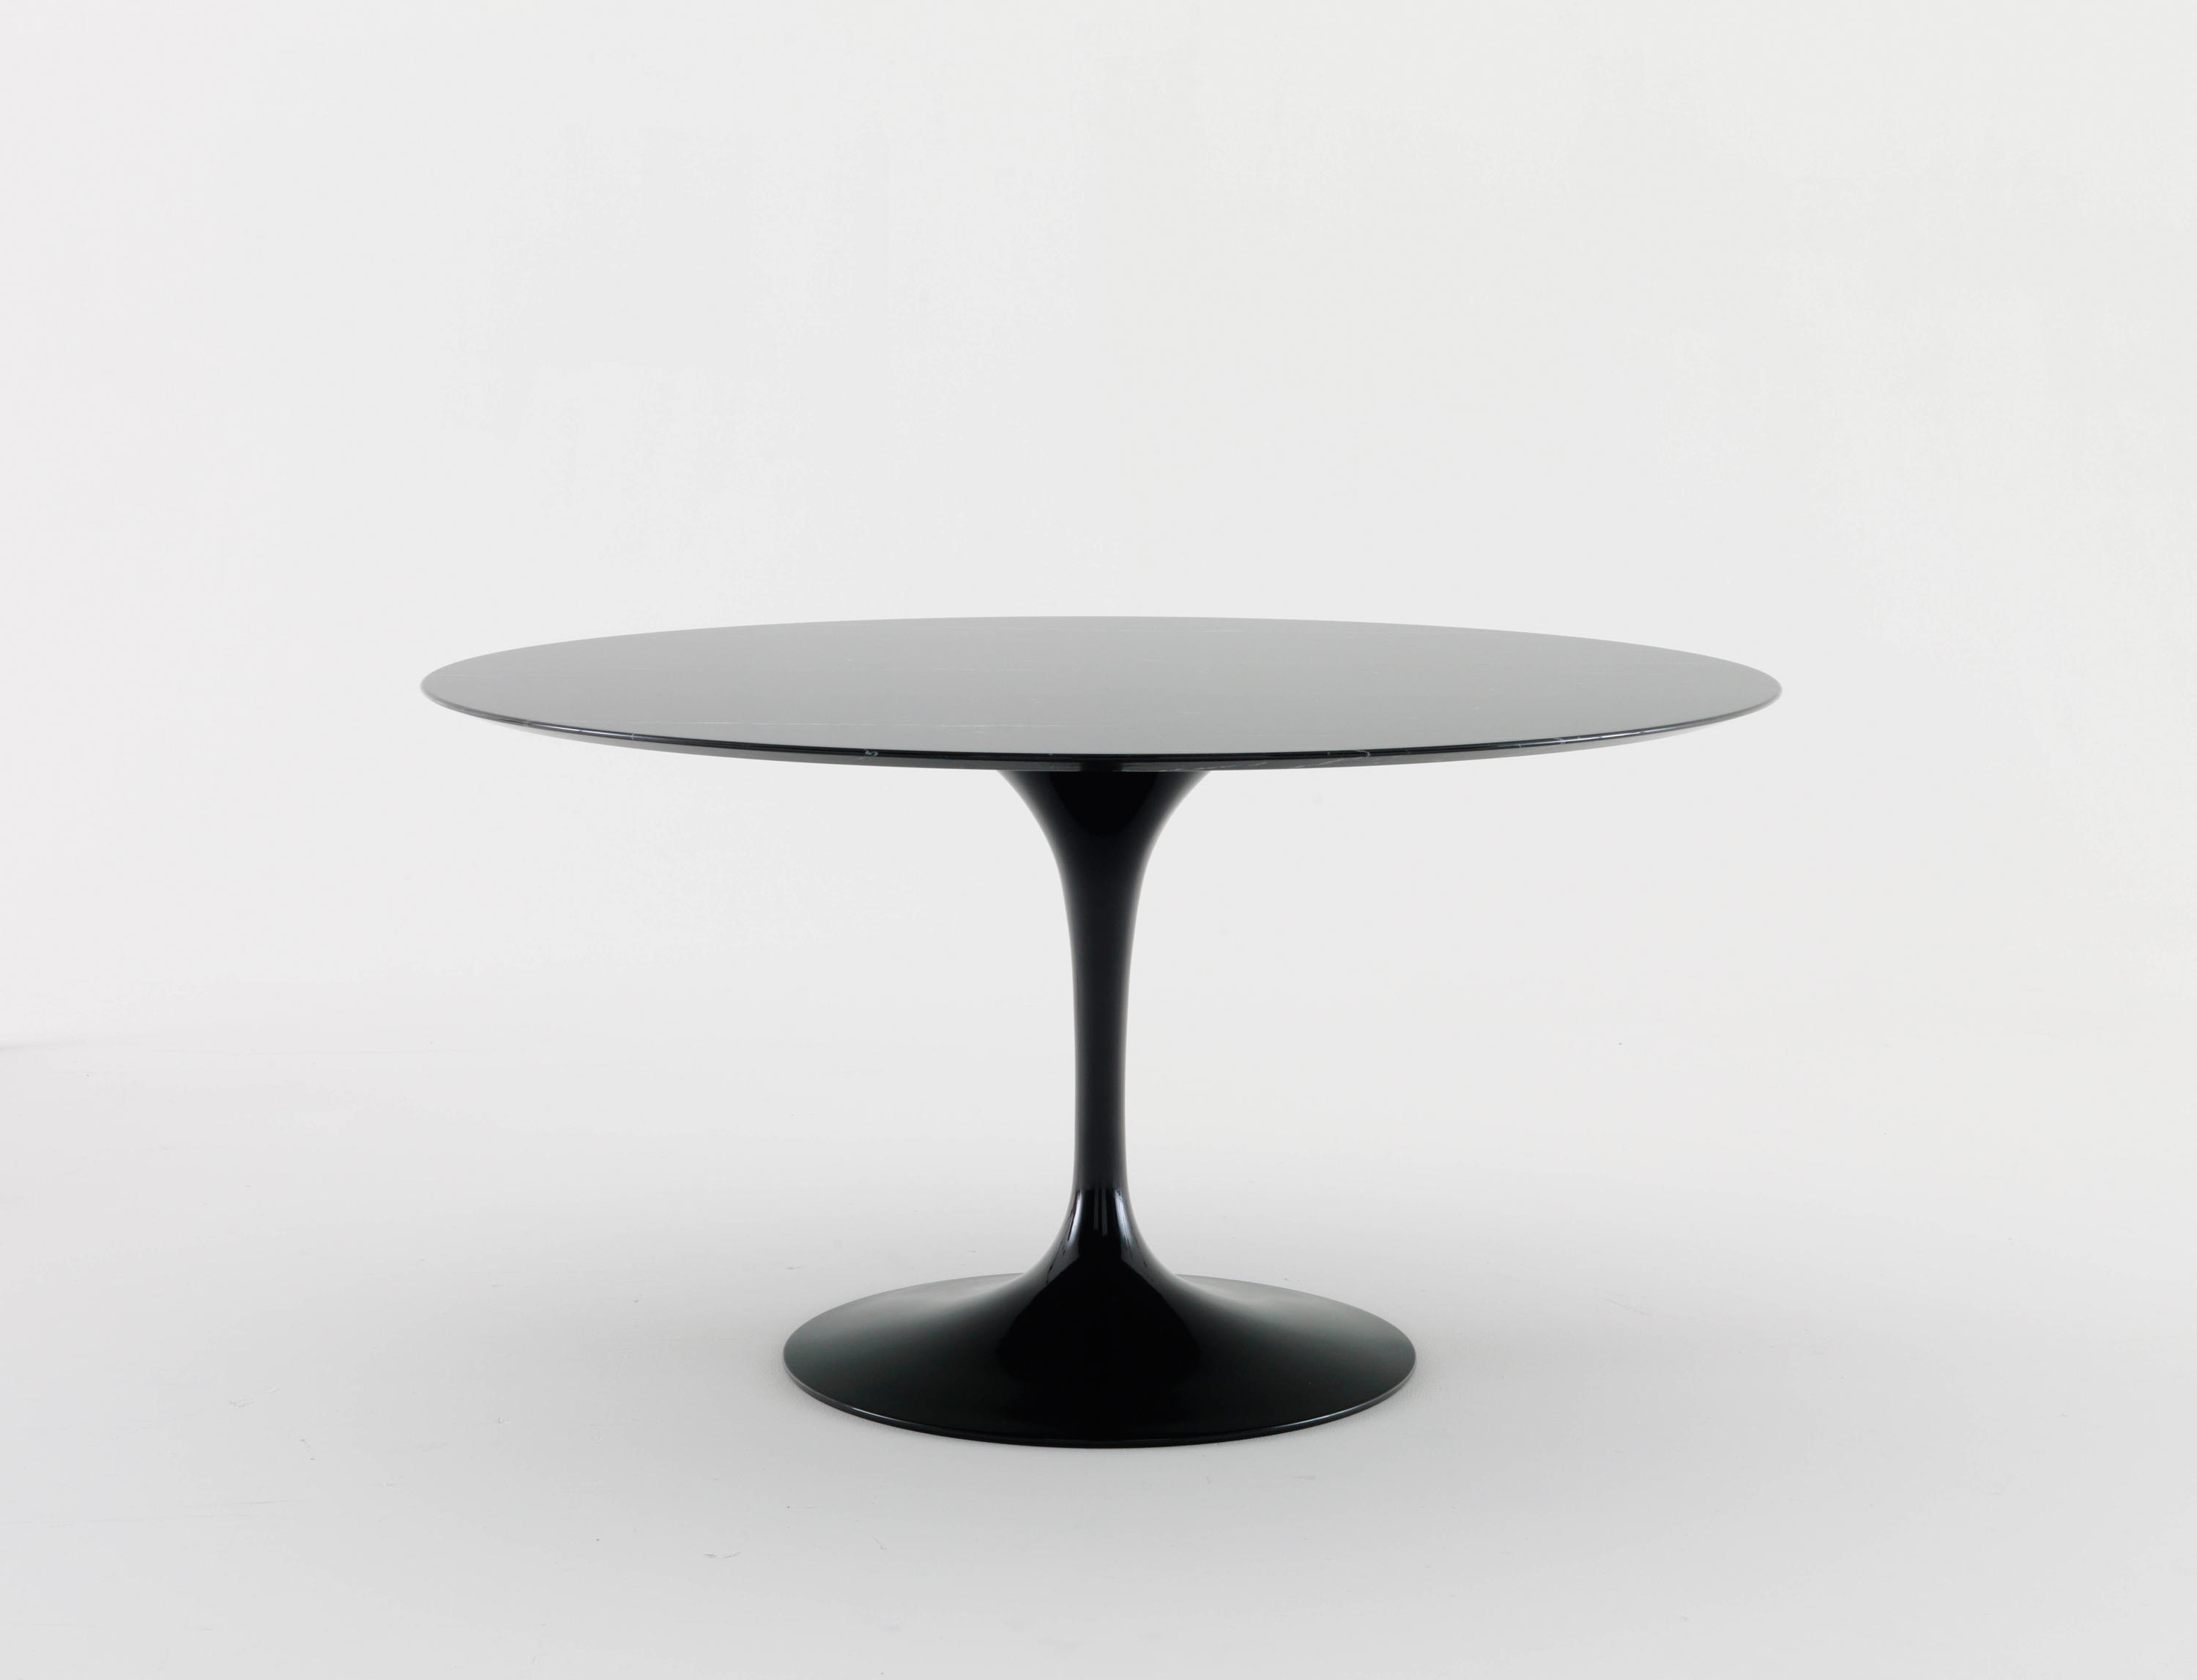 saarinen tulip dining table dining tables by knoll international architonic. Black Bedroom Furniture Sets. Home Design Ideas